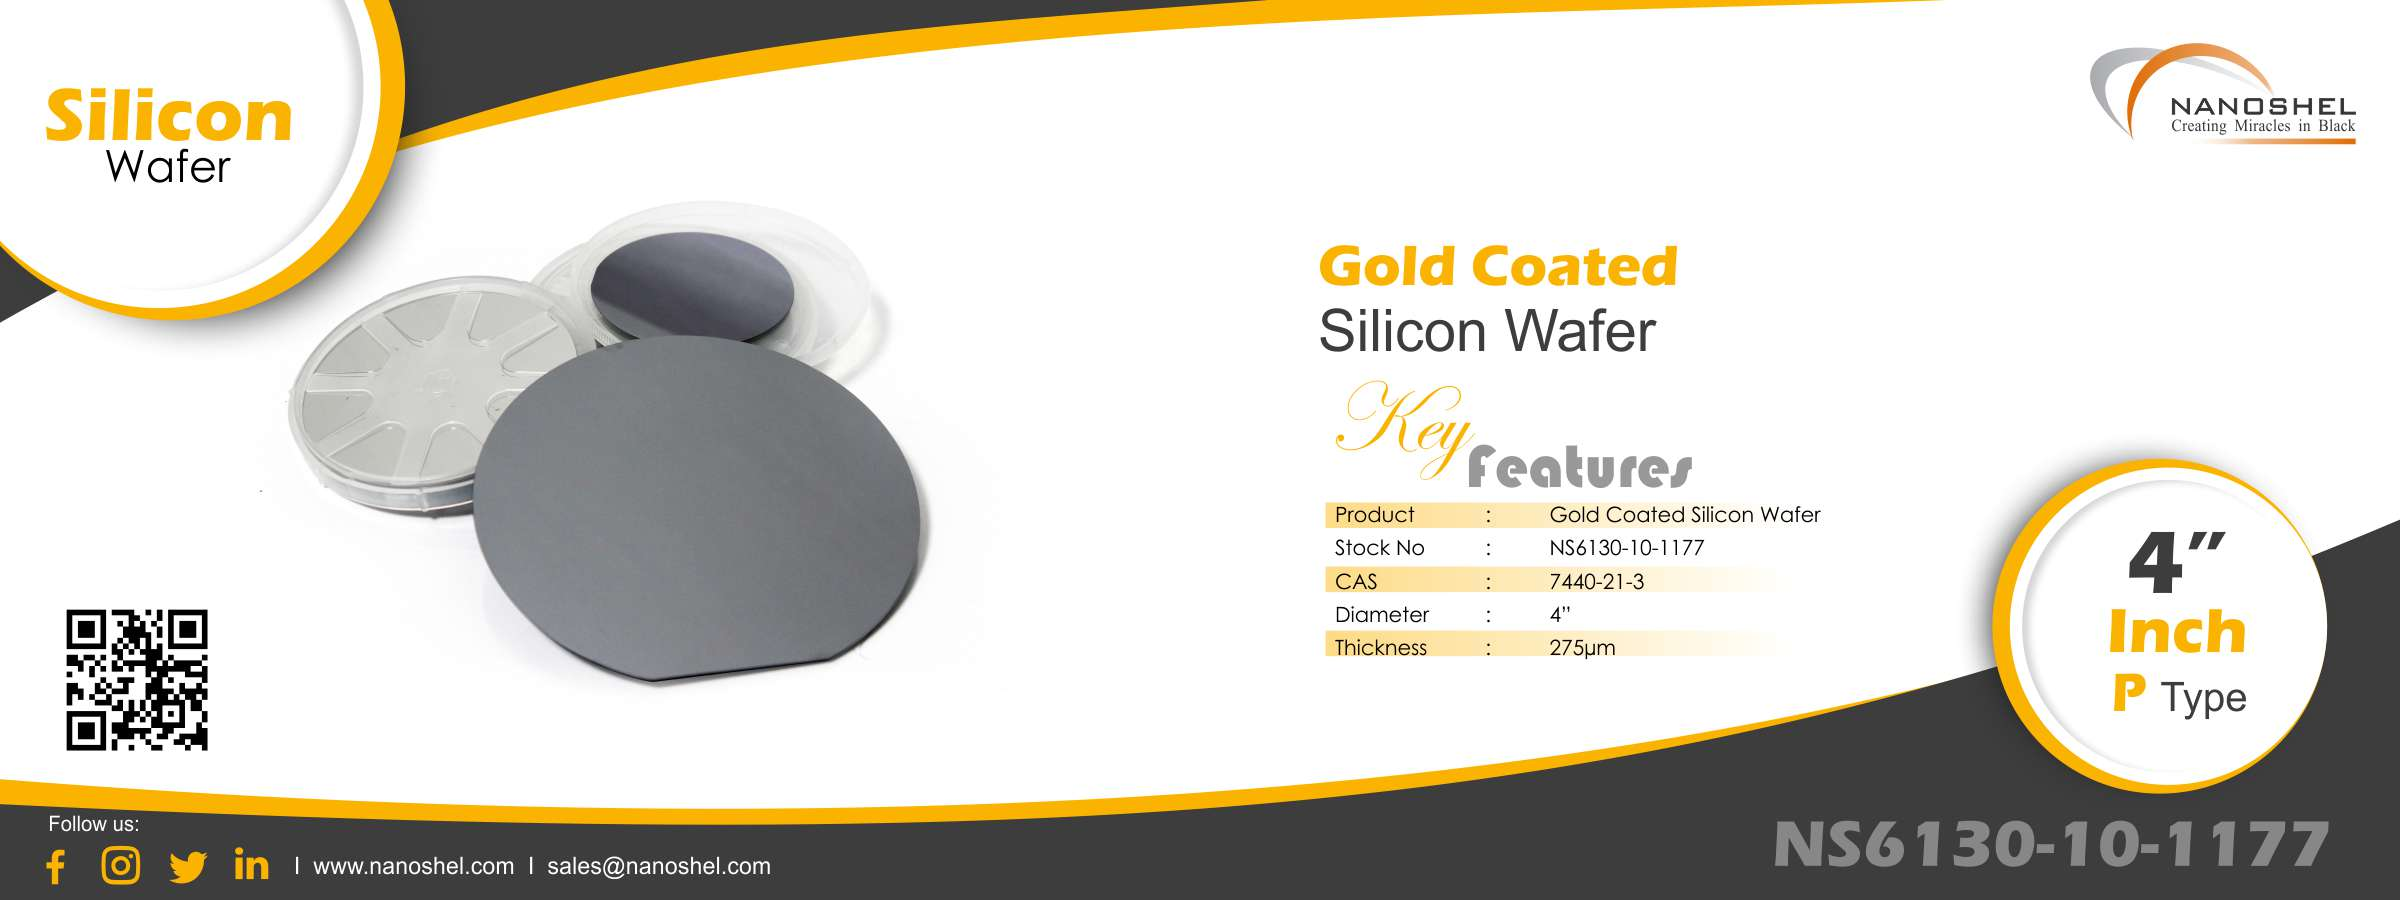 Silicon Wafer Gold Coated 4?